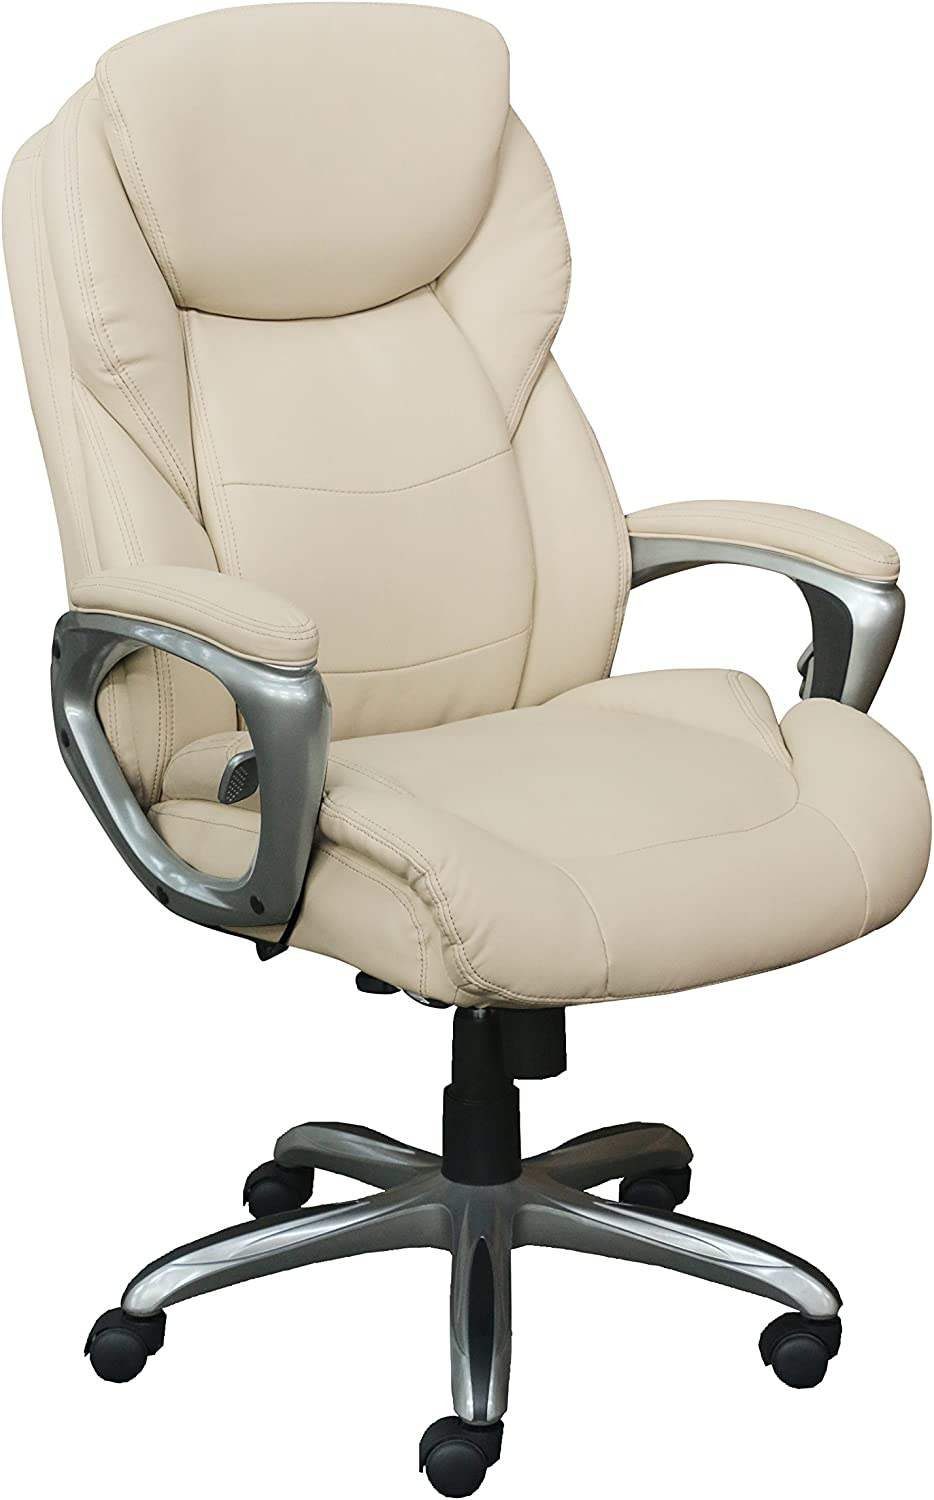 Serta 48098A My My Fit Chair, Ivory